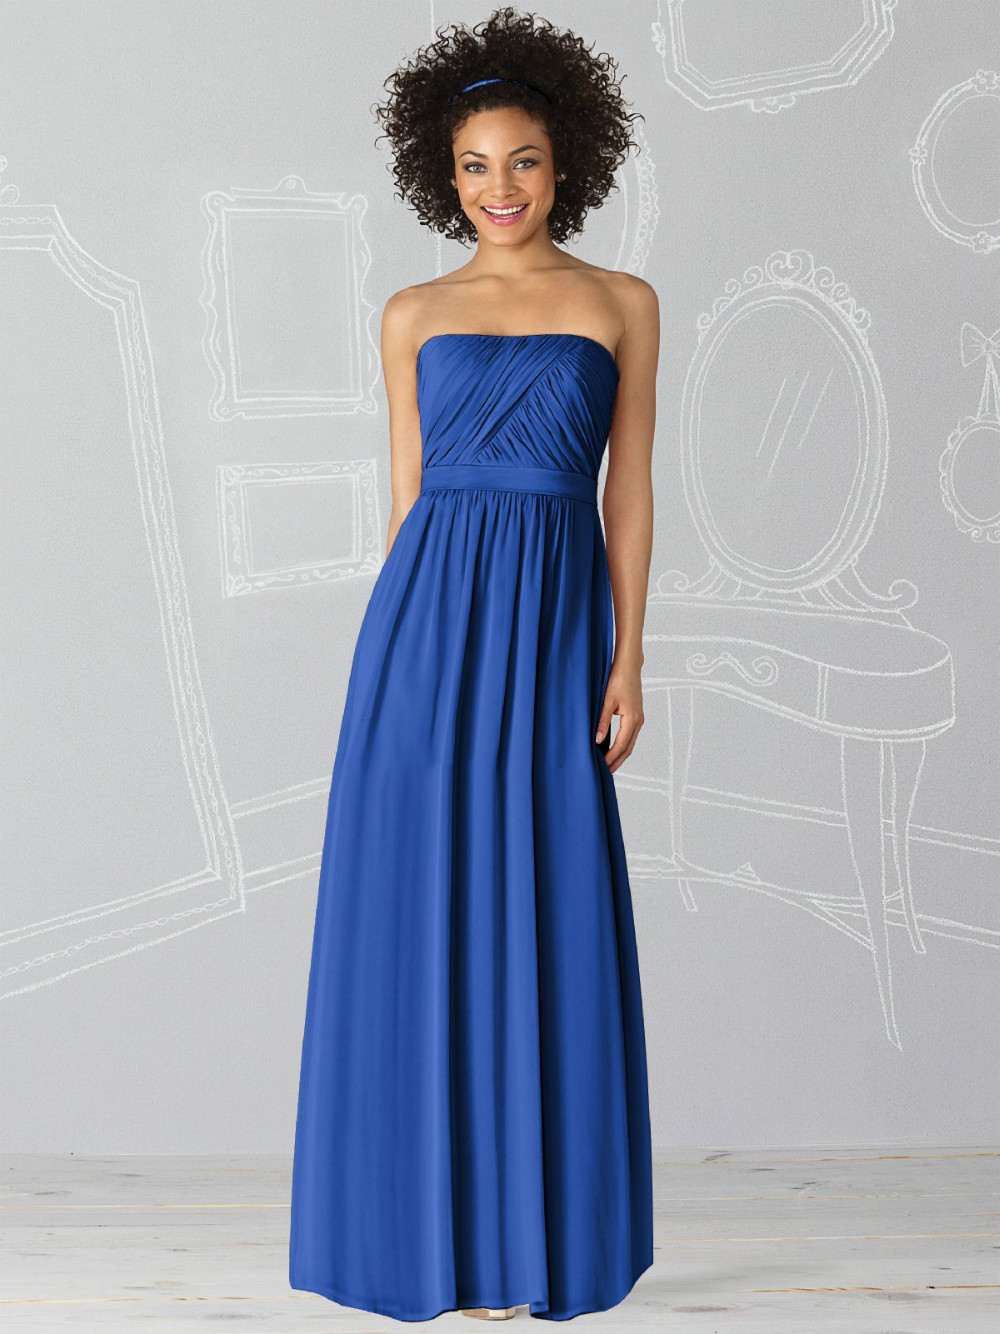 Bridesmaid dresses long chiffon wedding guest dresses for Cheap wedding guest dresses